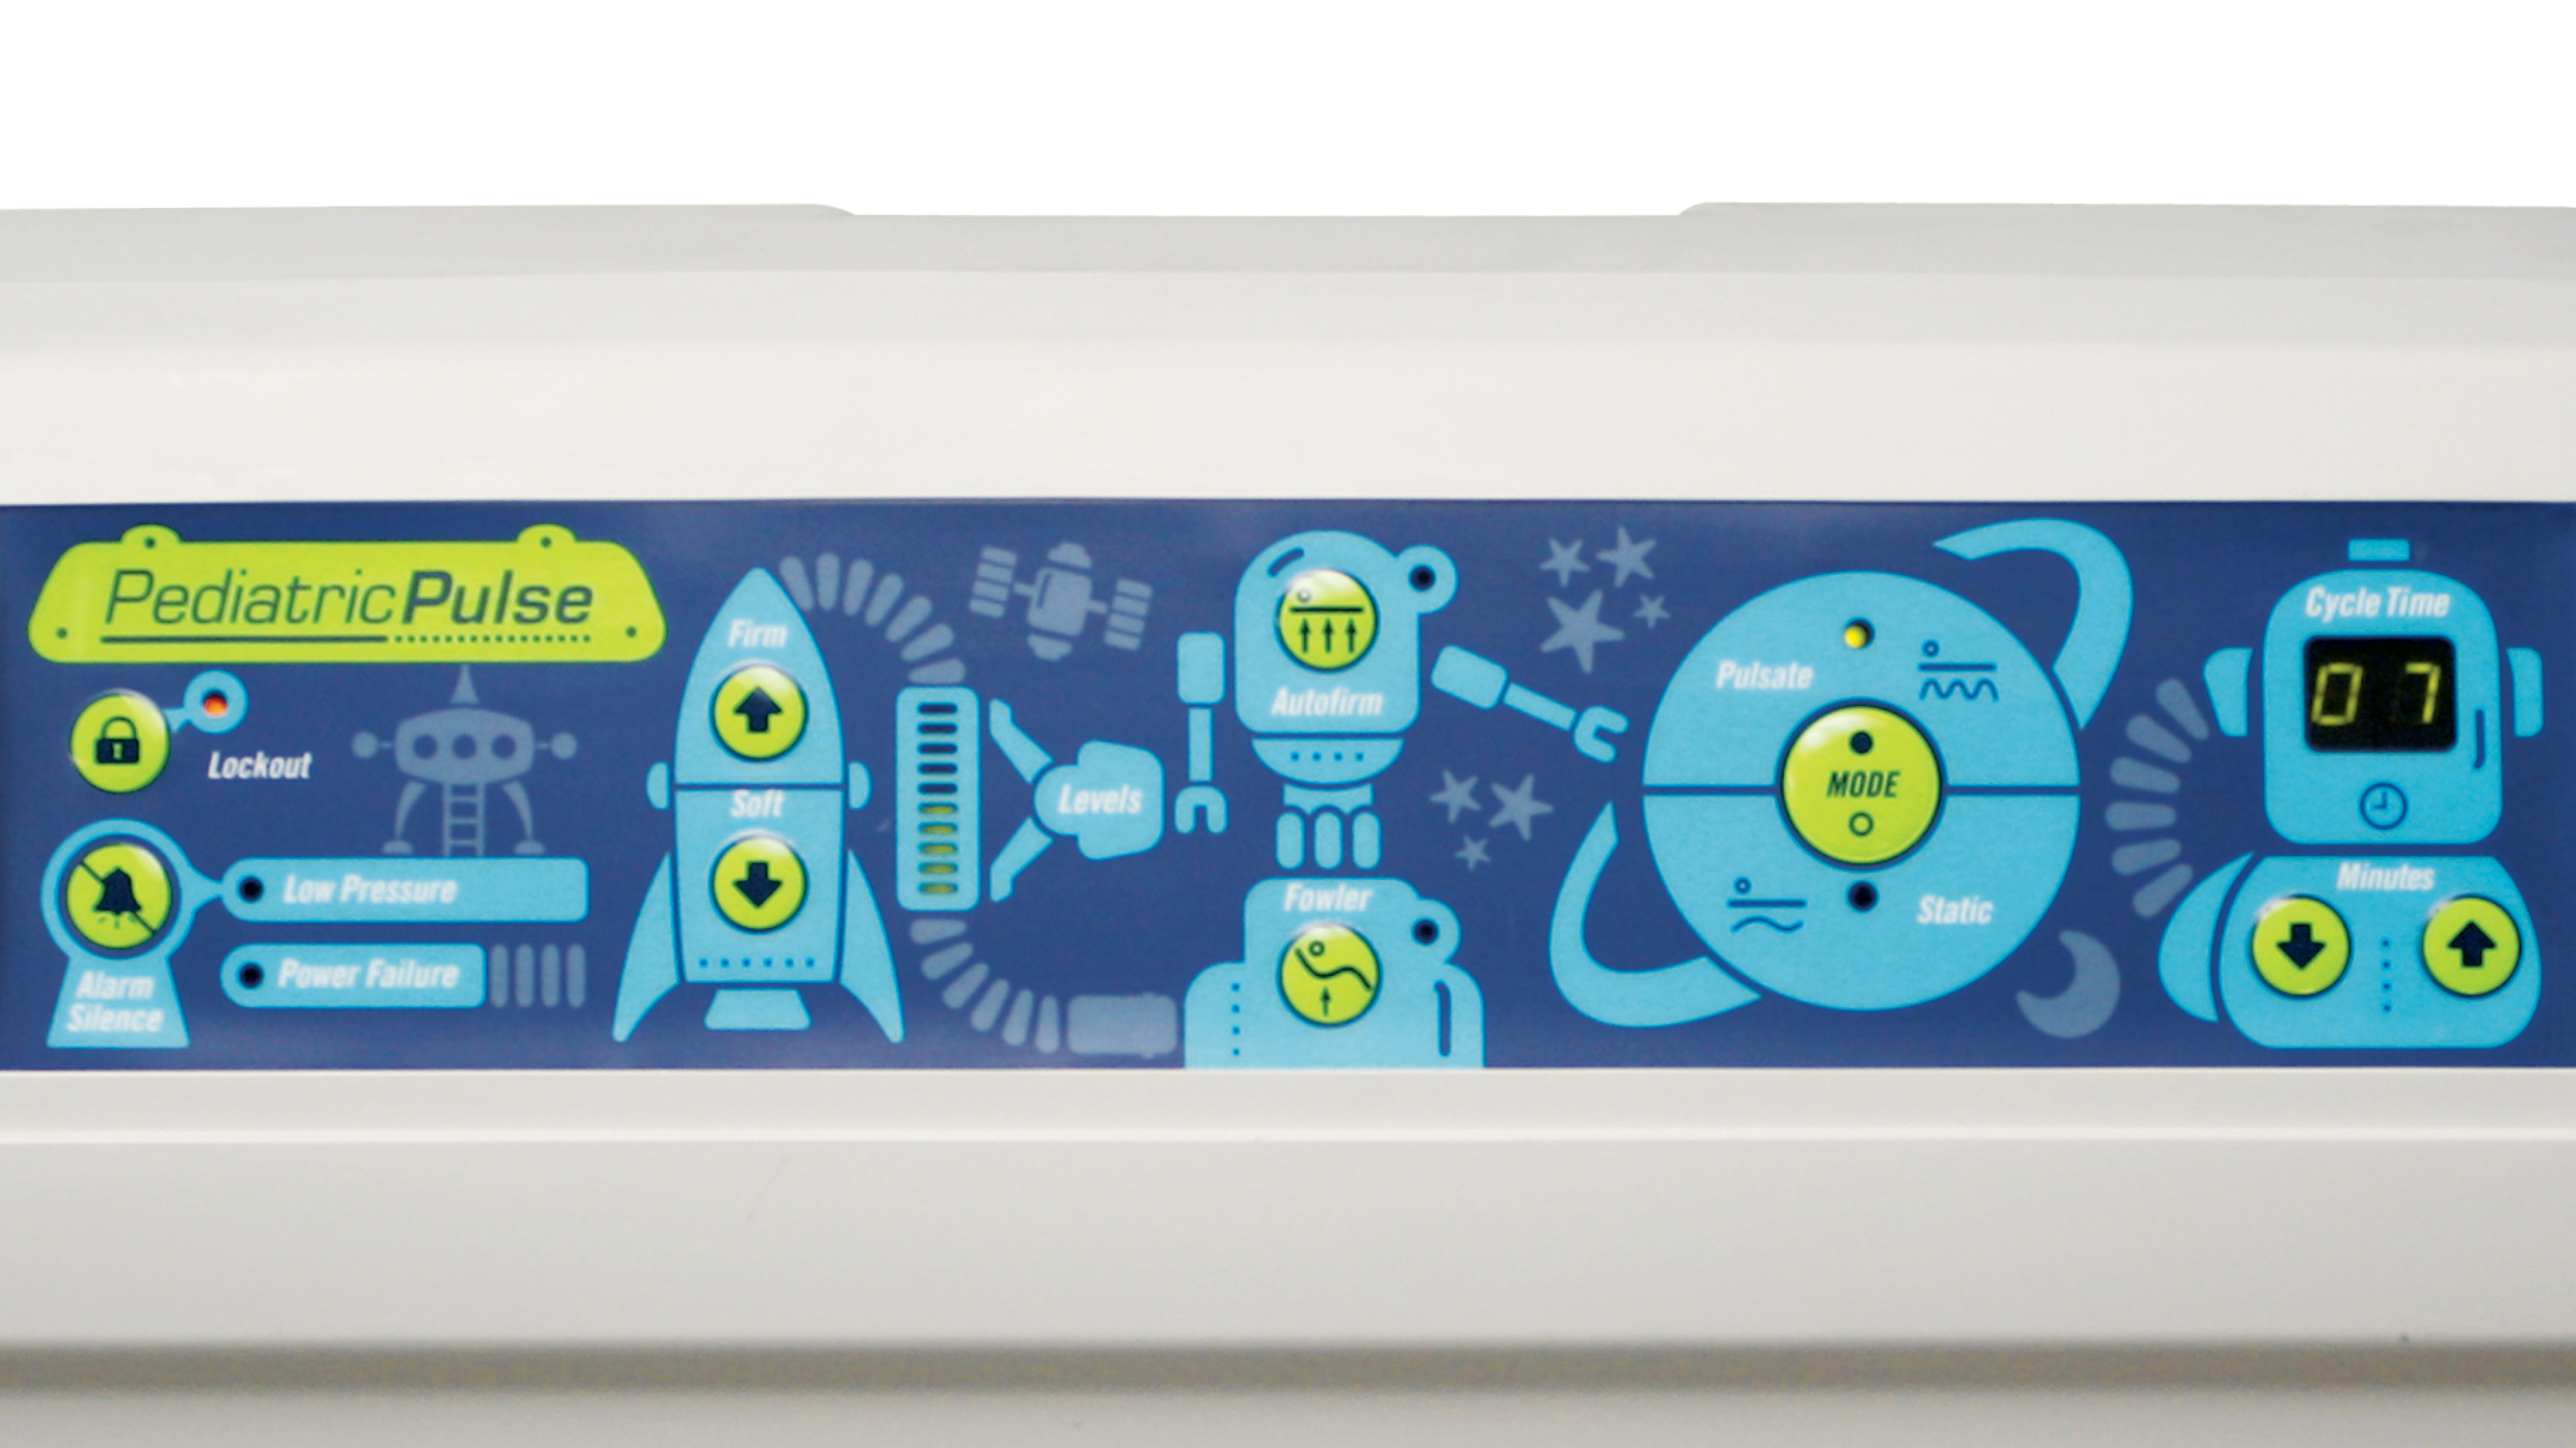 Pediatric Pulse Control Unit With Kid-Friendly Design